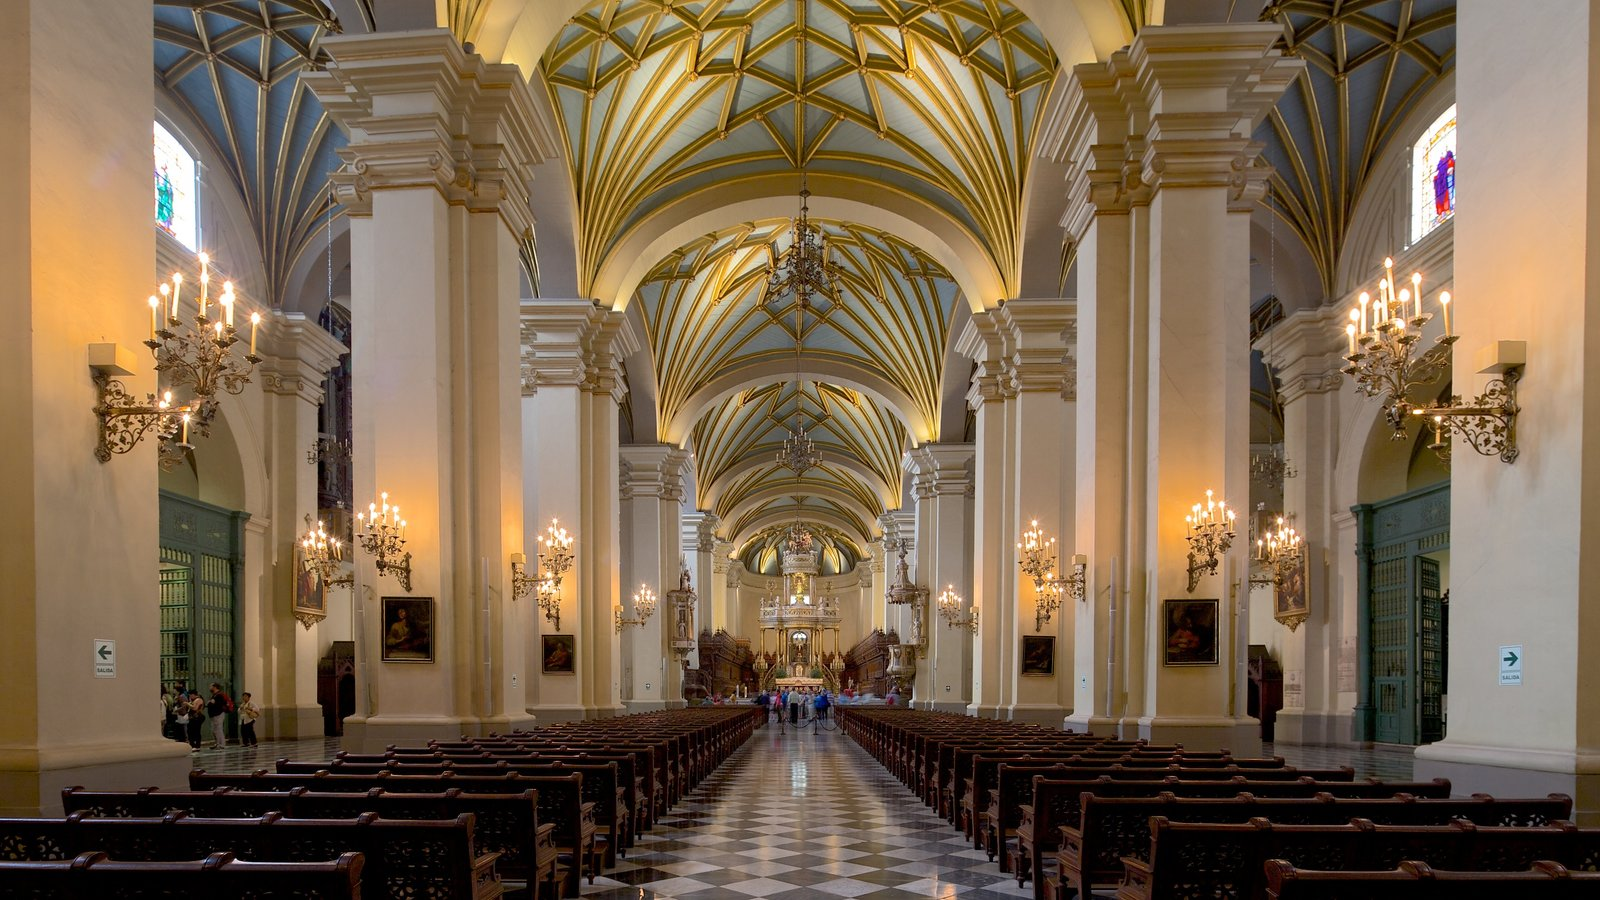 Lima which includes religious elements, interior views and a church or cathedral